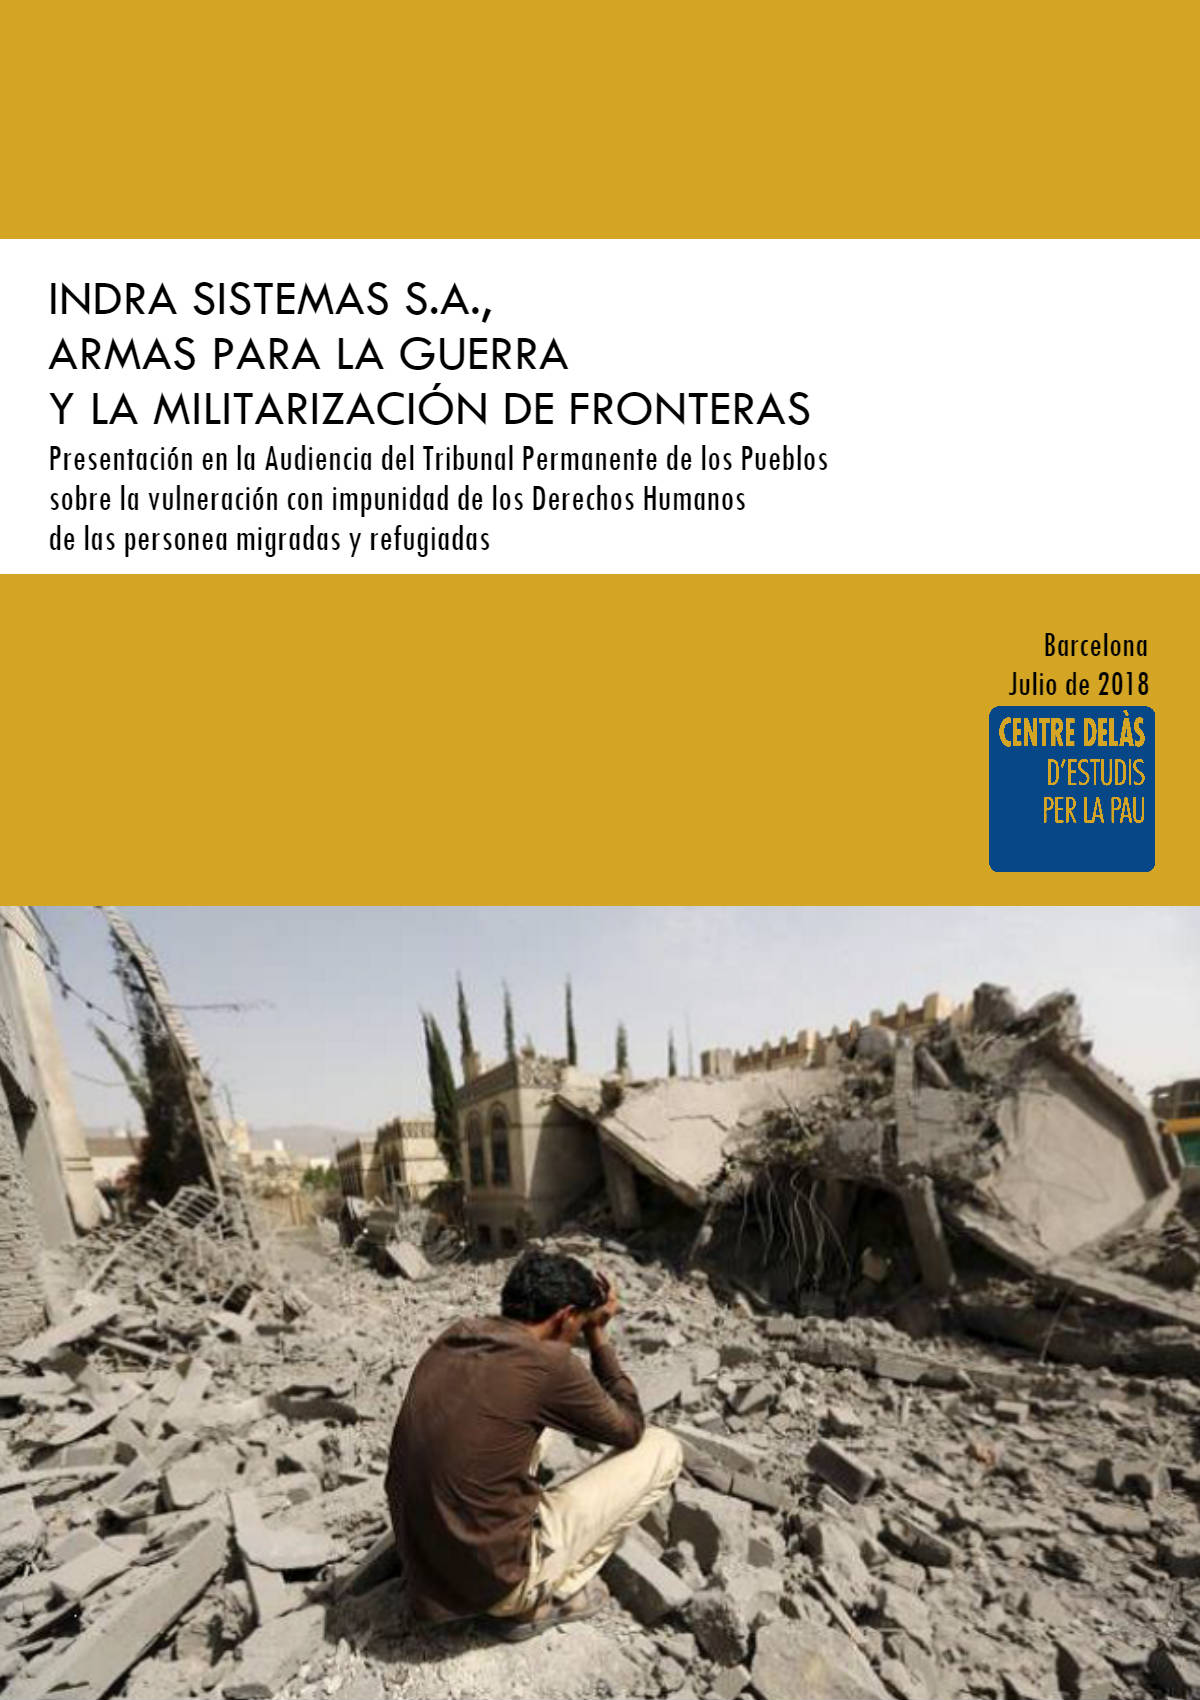 Indra Sistemas S.A., weapons for war and border militarisation